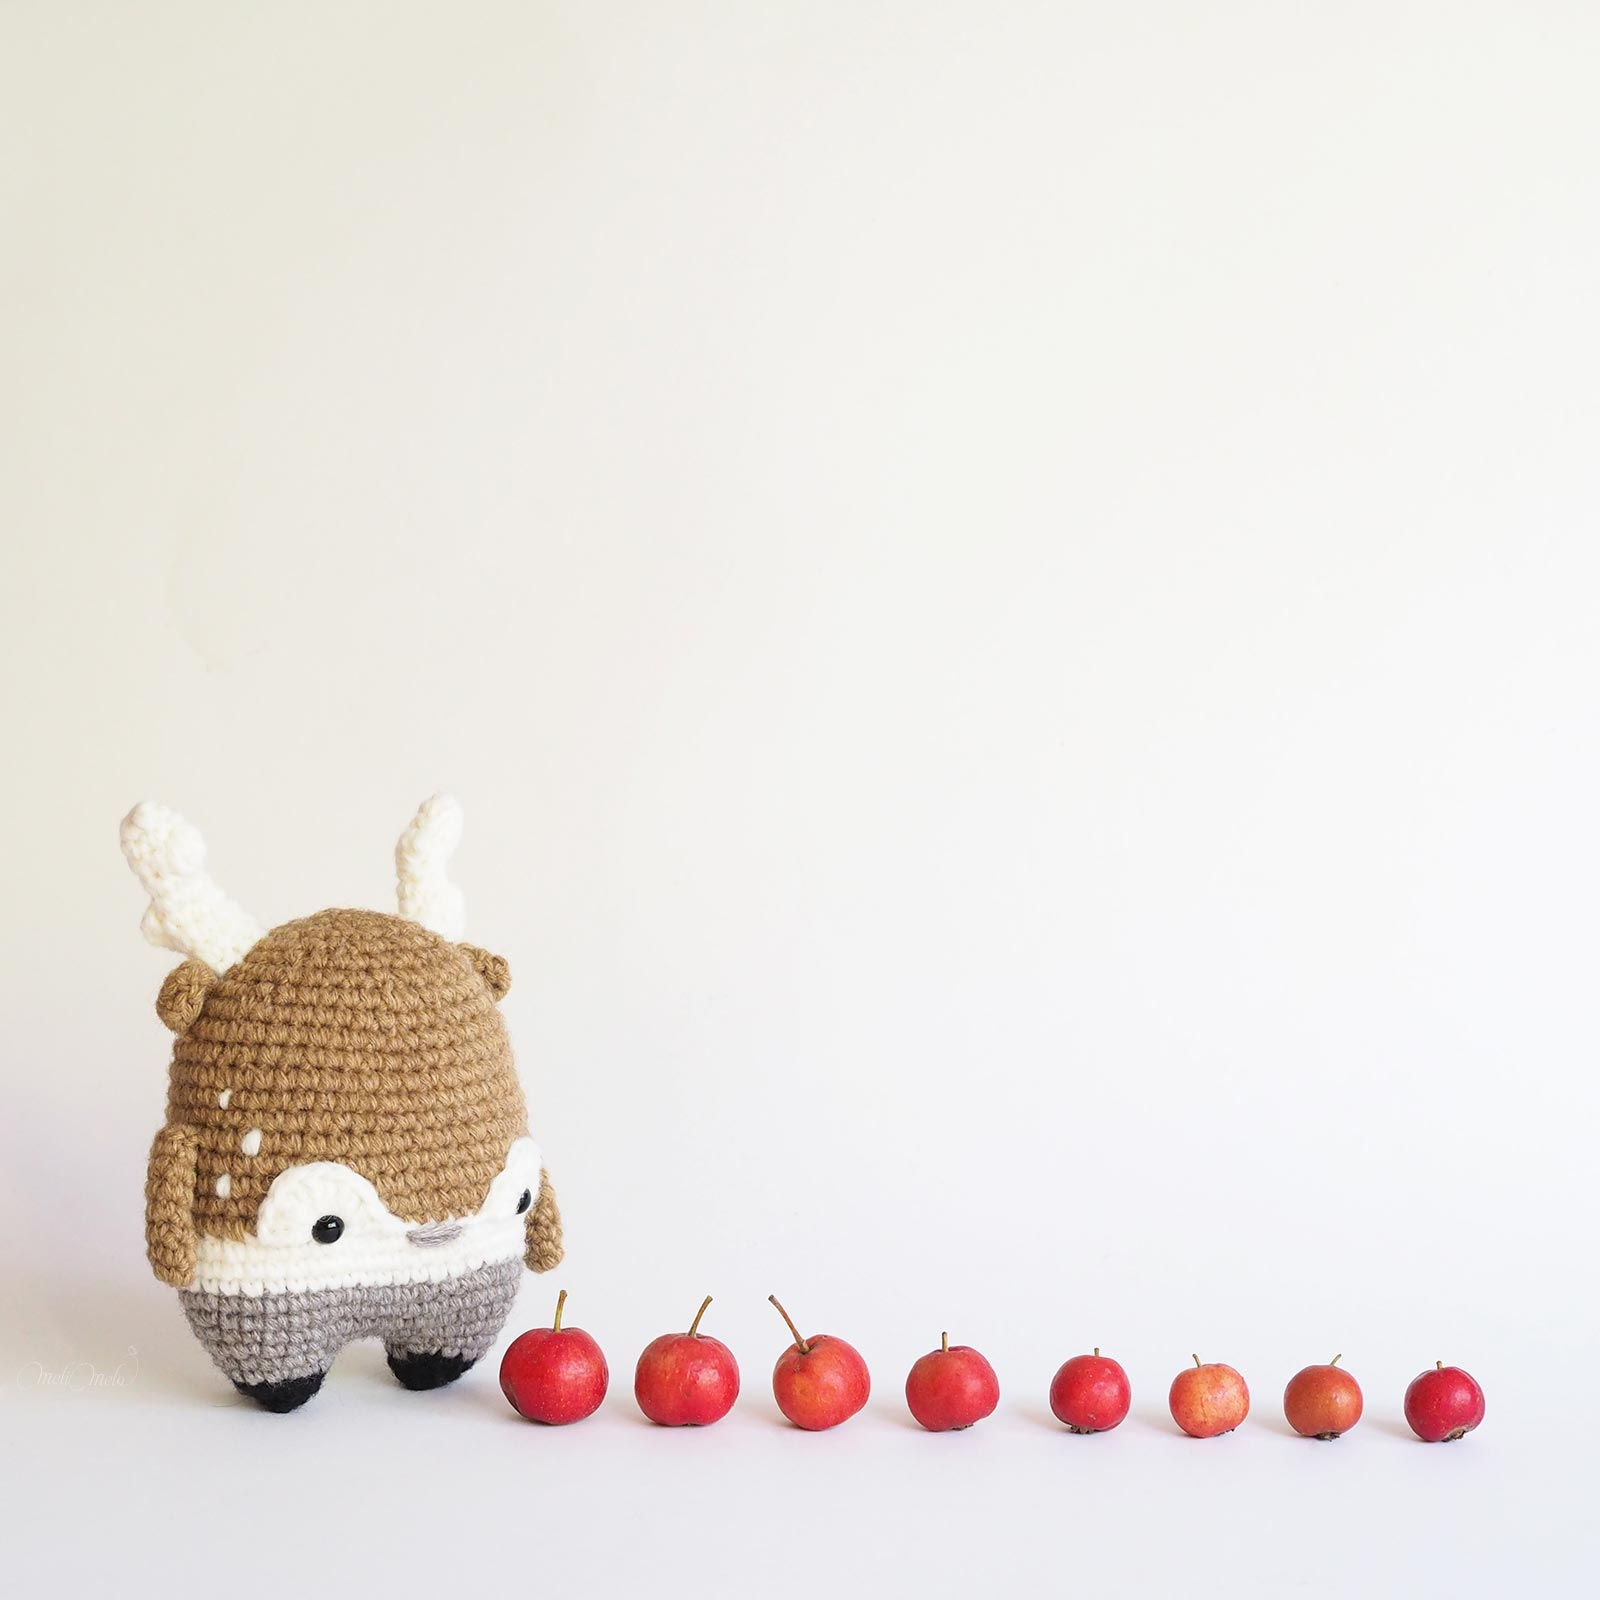 doudou cerf pommes Heinz crochet deer stag Lalylala wool Alpaca Chunky Ricodesign laboutiquedemelimelo